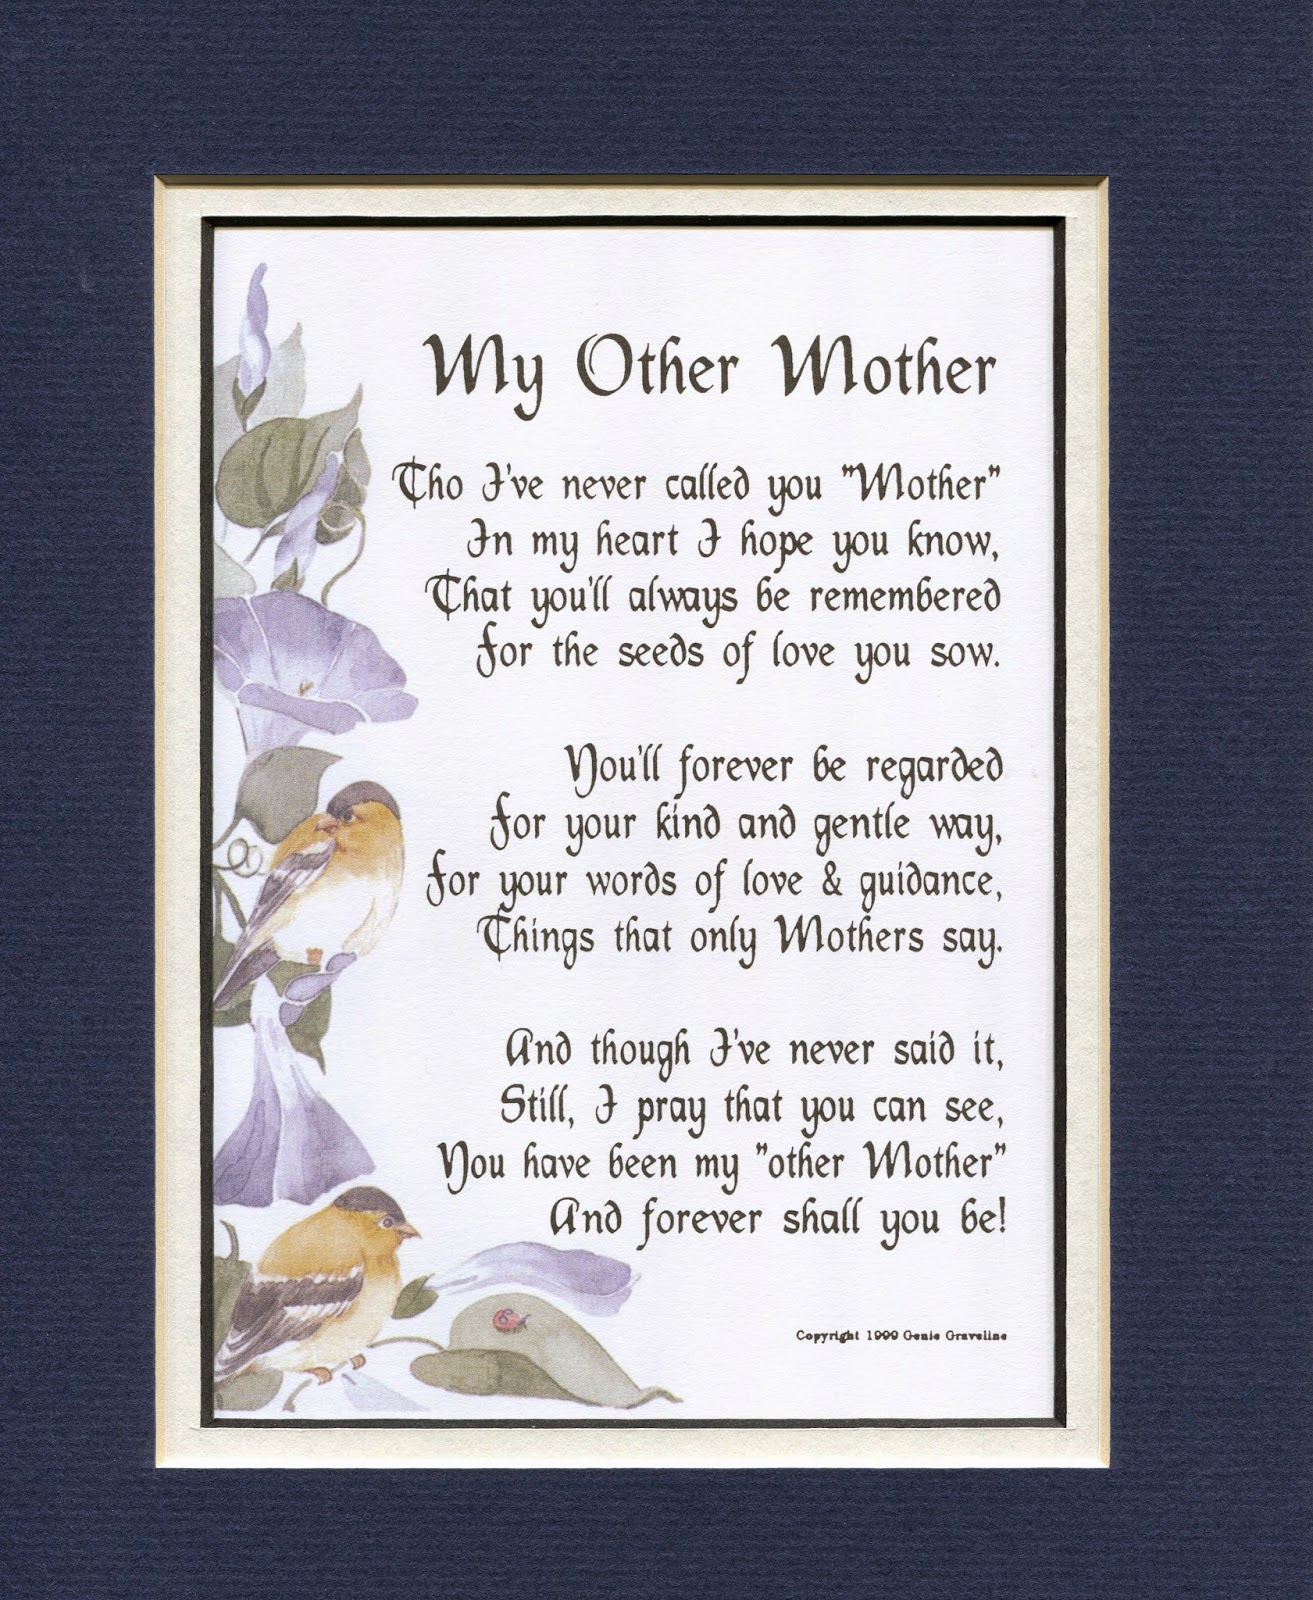 Genie's Poems: My Other Mother